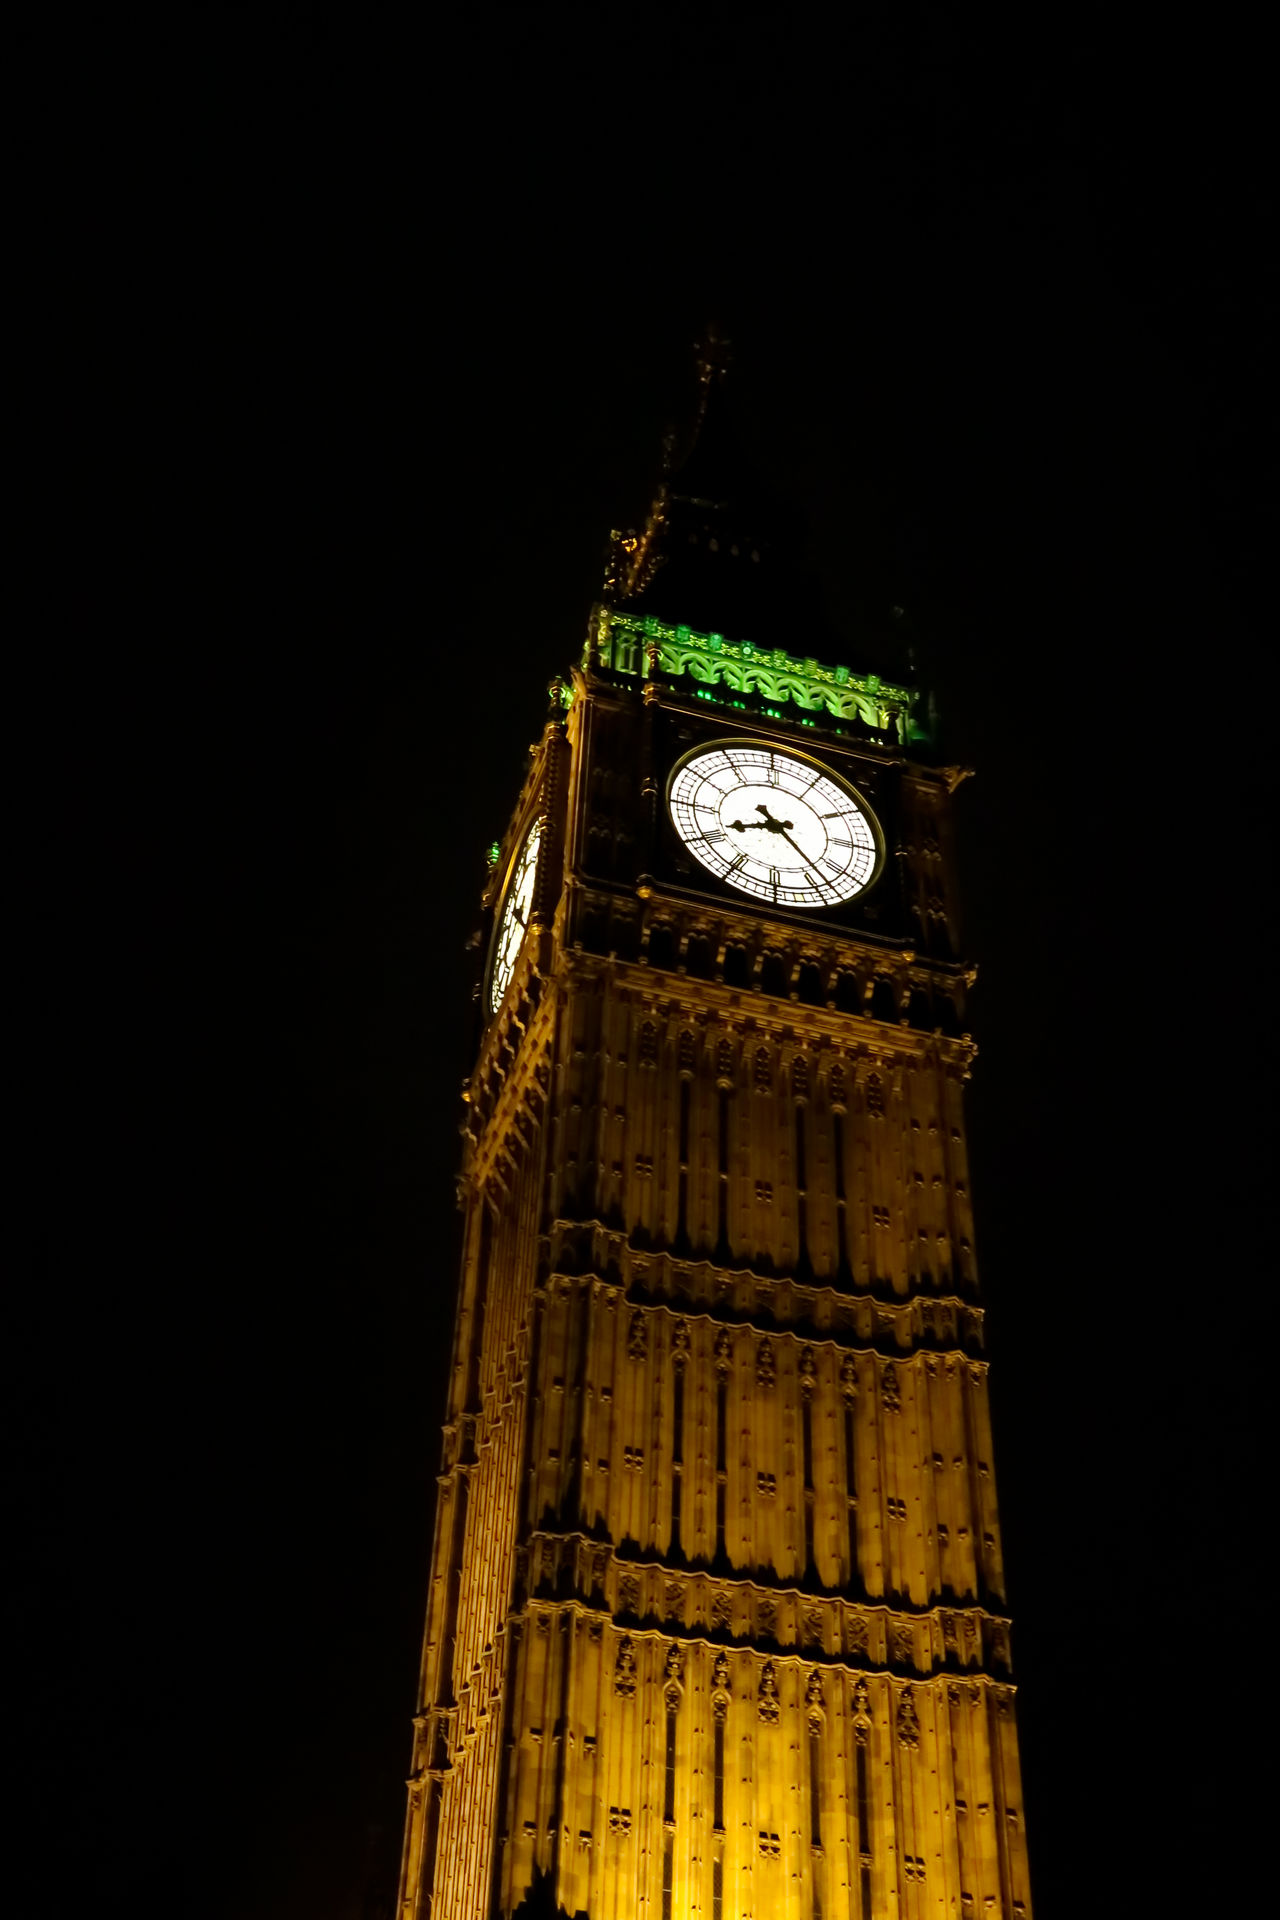 Architecture Astronomical Clock Big Ben Britain Building Exterior City Clock Clock Face Clock Tower Cultures Icon Illuminated Low Angle View Midnight Minute Hand Night No People Outdoors Time Tower Tower Buildings Travel Destinations Uk View Westminster